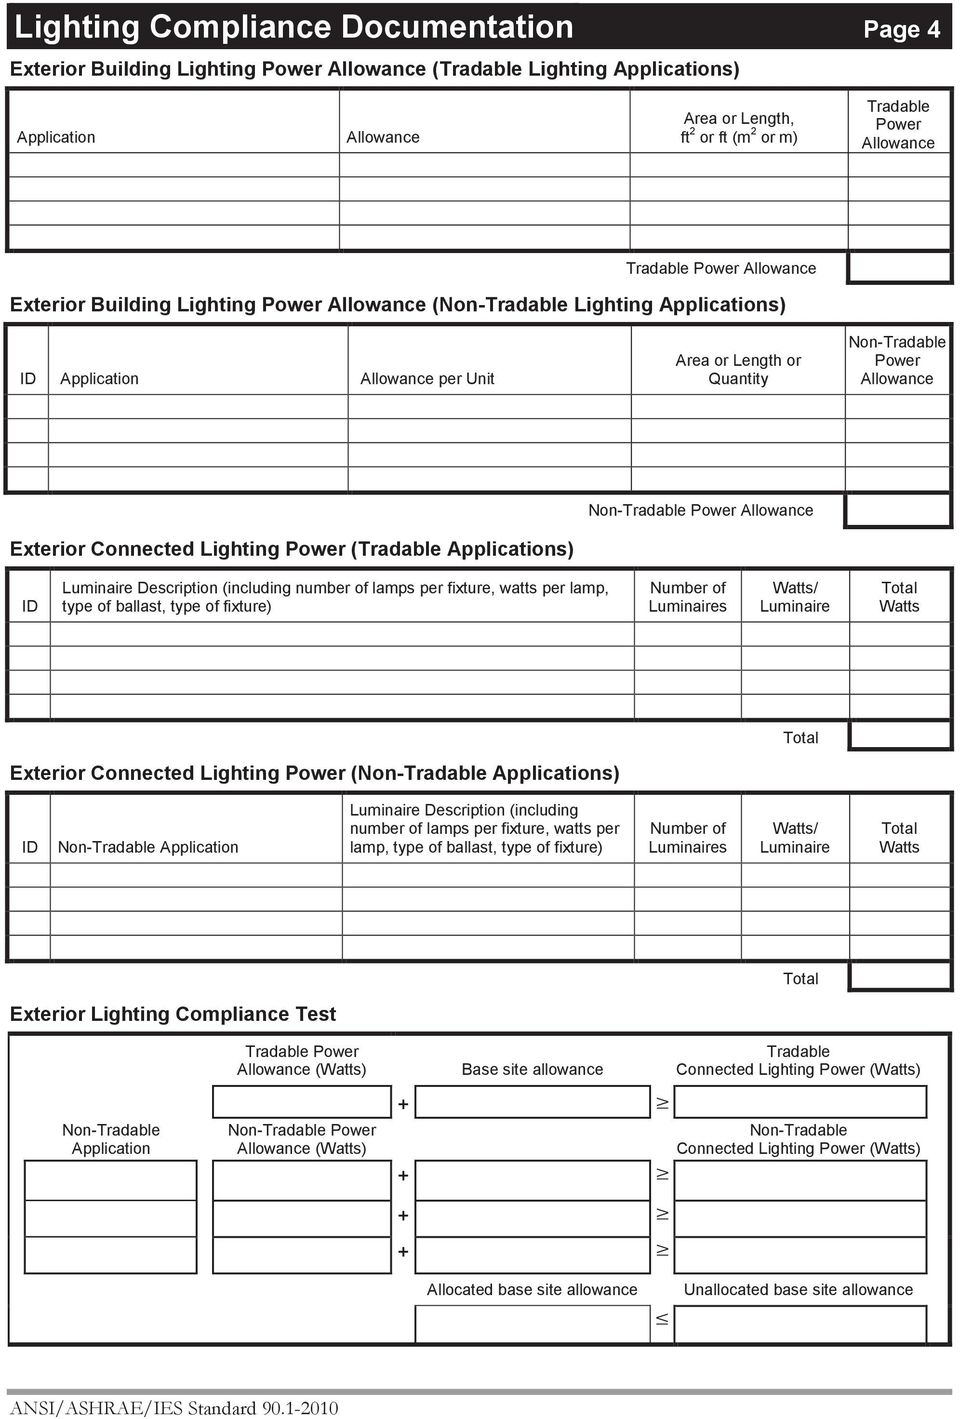 lamps per fixture, watts per lamp, type of ballast, type of fixture) s Exterior Connected Lighting (Non-Tradable Applications) Non-Tradable Application Description (including number of lamps per